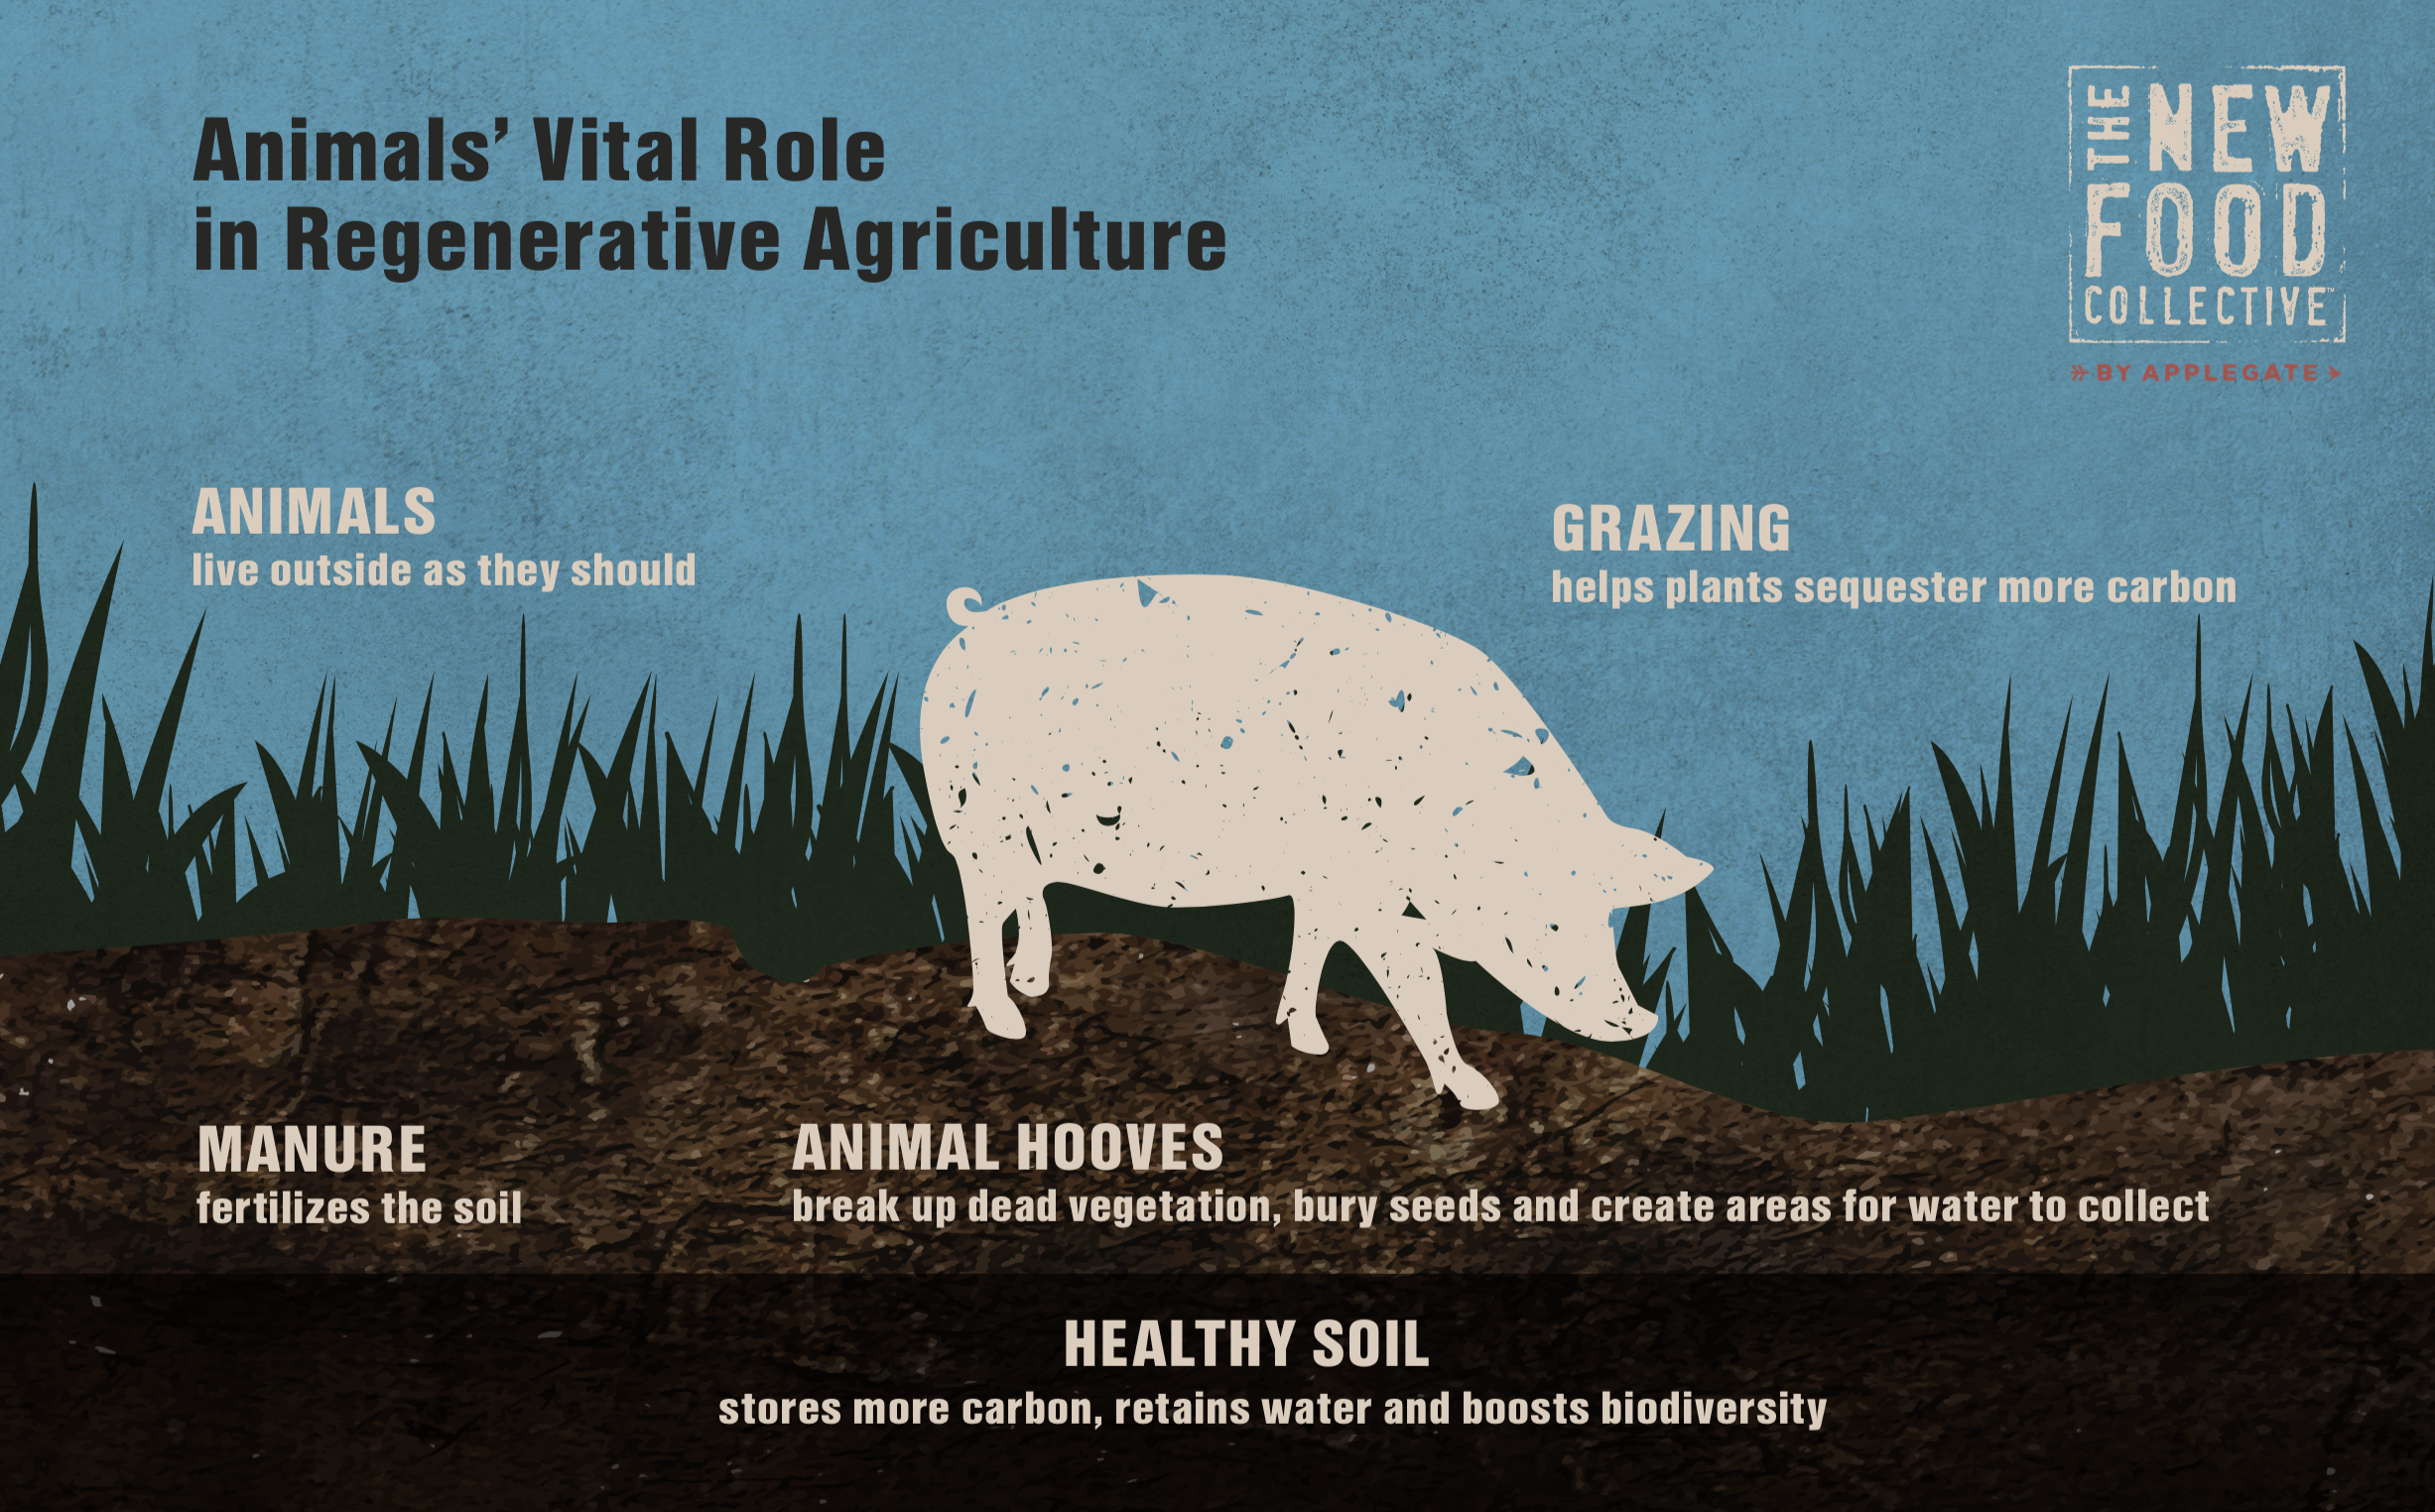 Animal's Vital Role in Regenerative Agrigulture